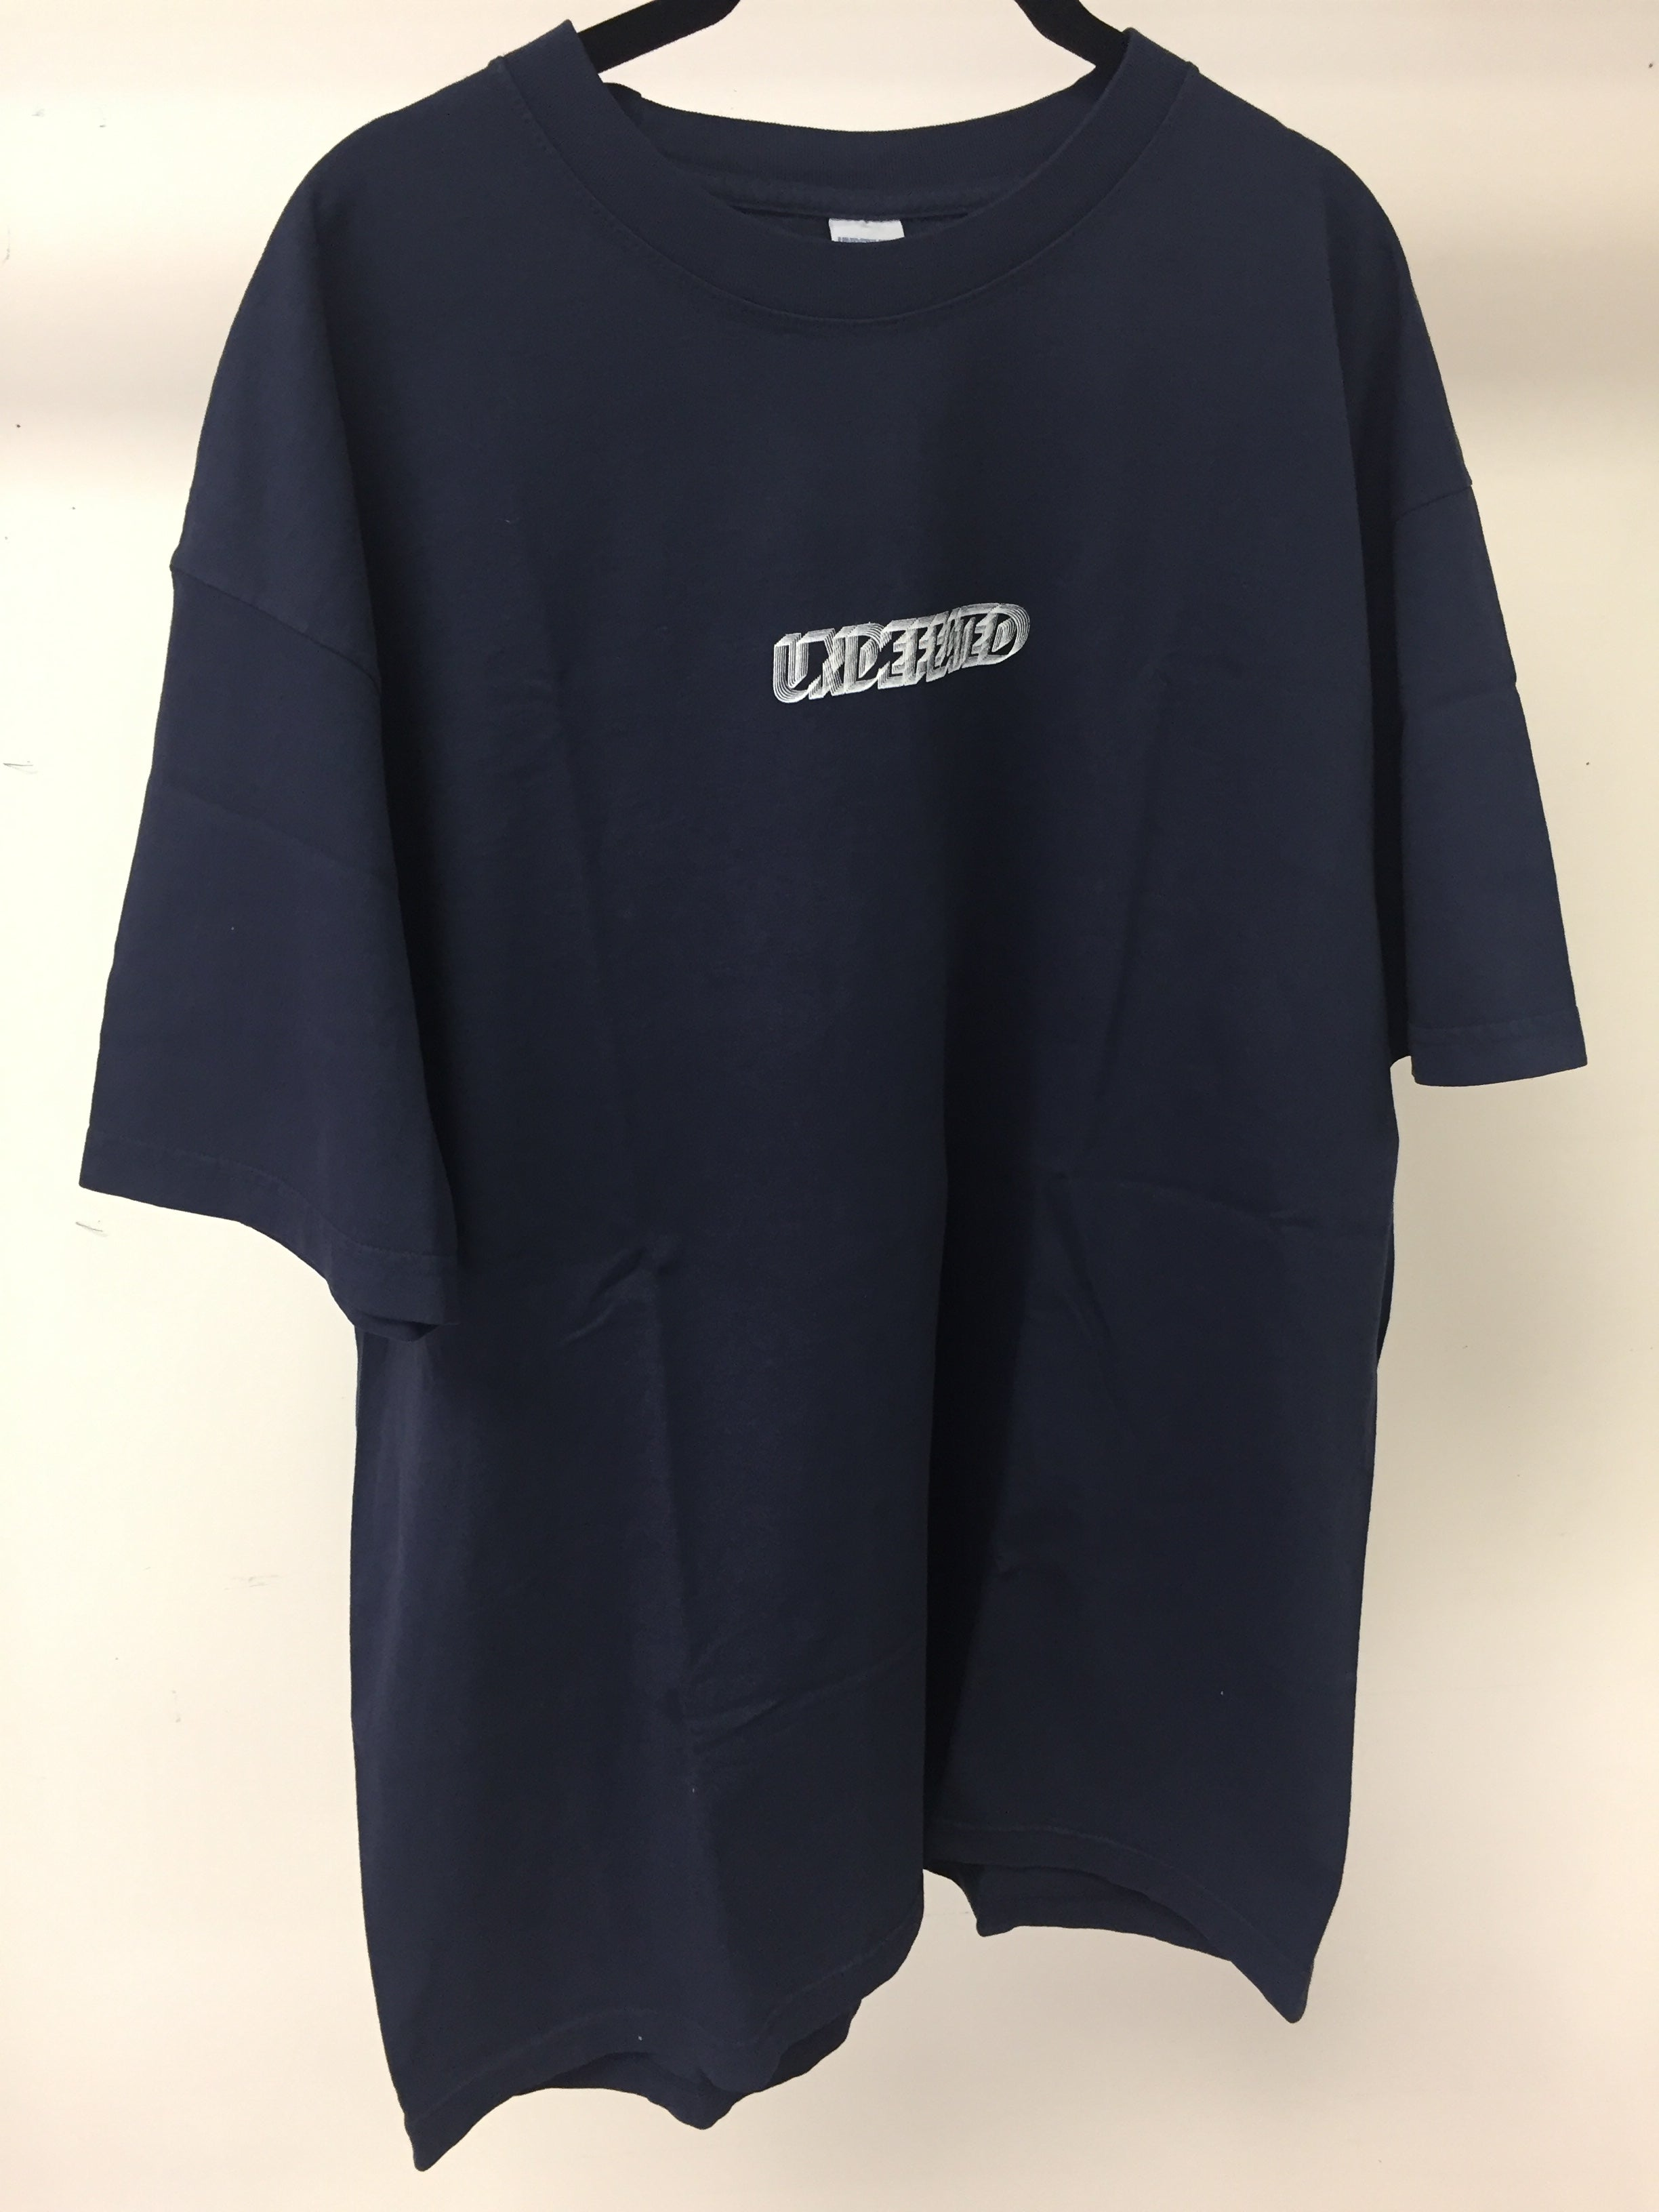 UNDEFEATED - TSHIRT - BLACK - SIZE XL